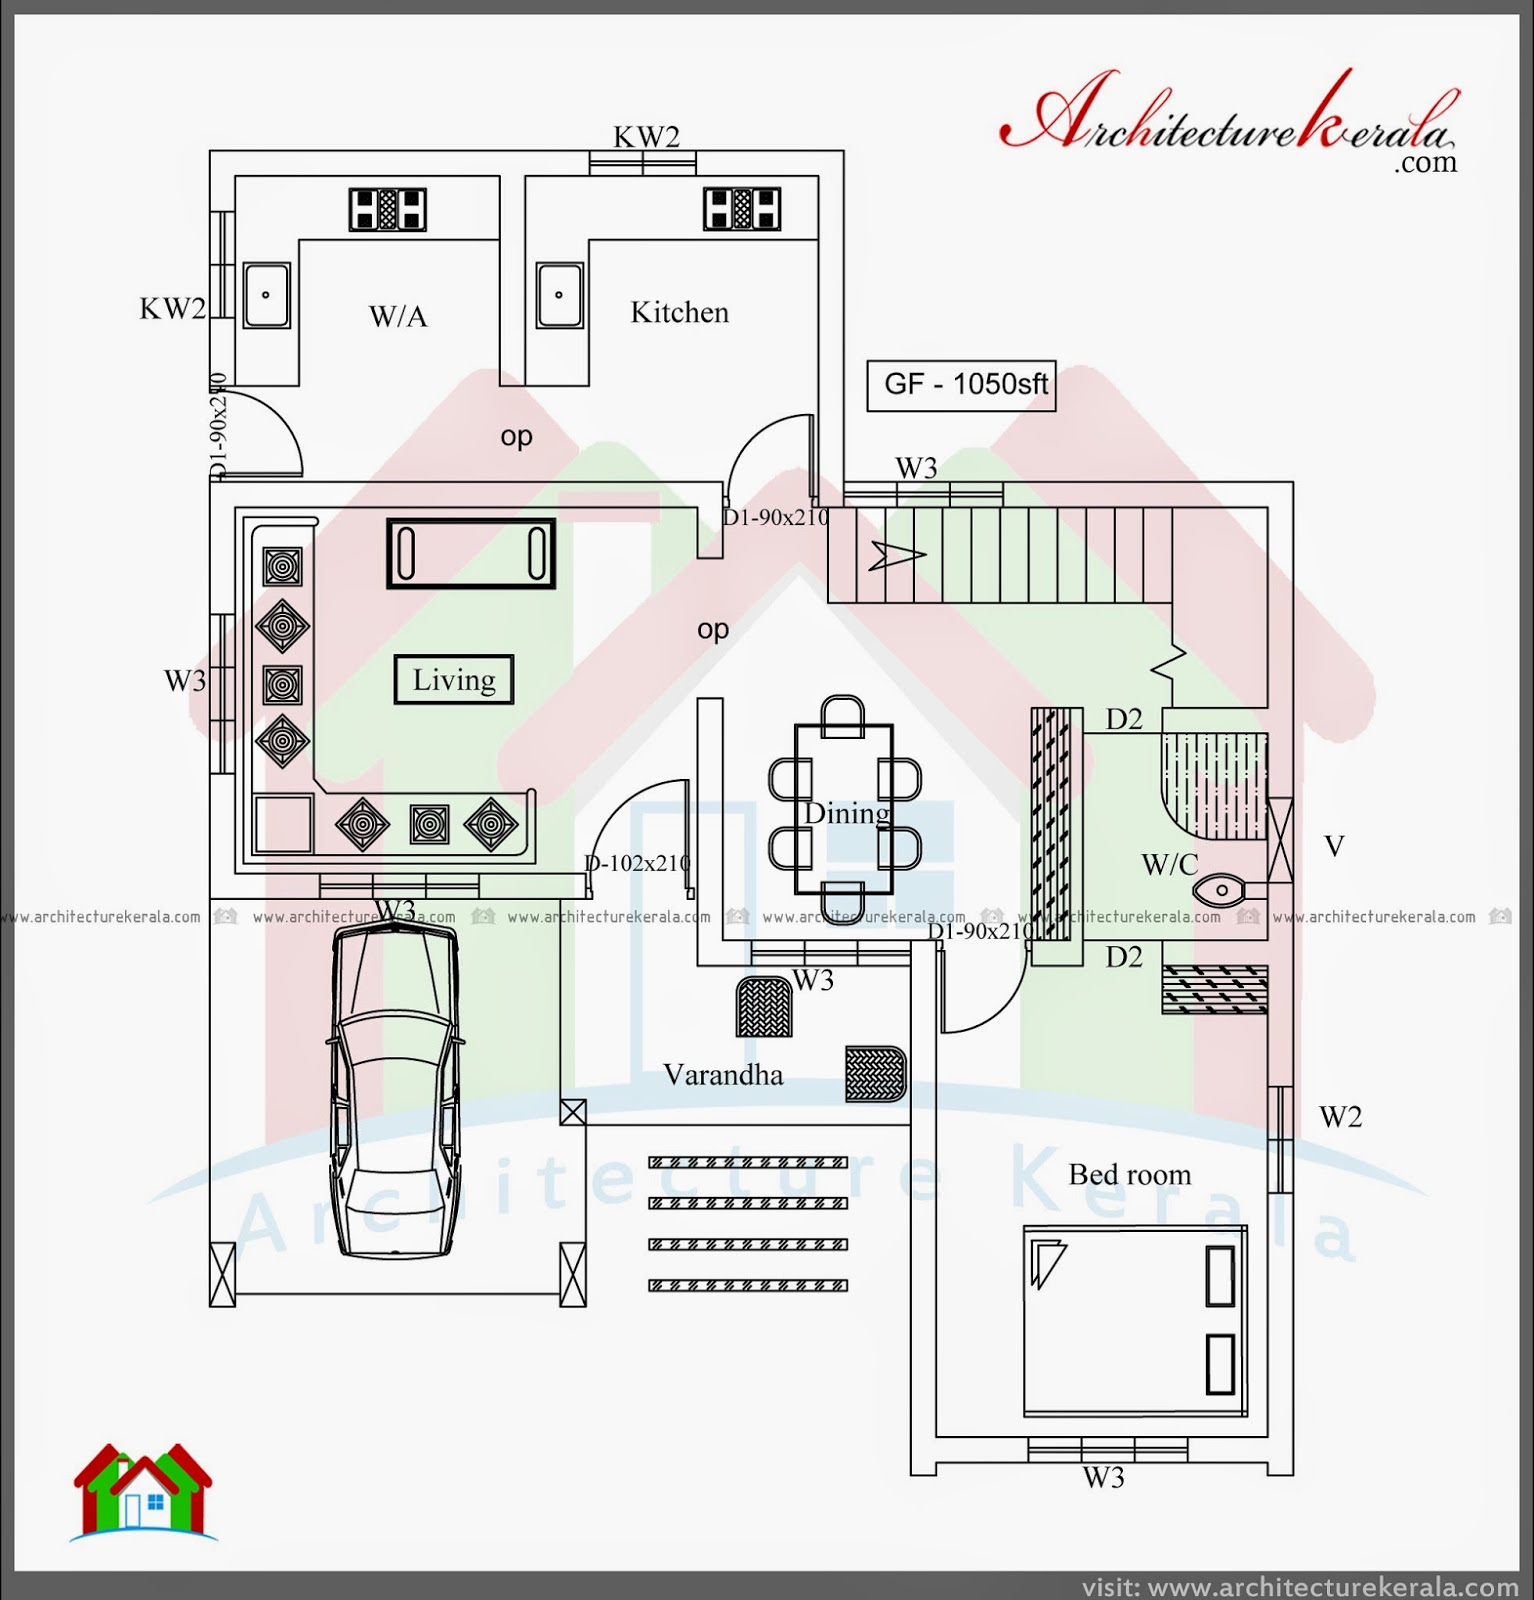 Three bedroom two storey house plan architecture kerala 3 bedroom kerala house plans